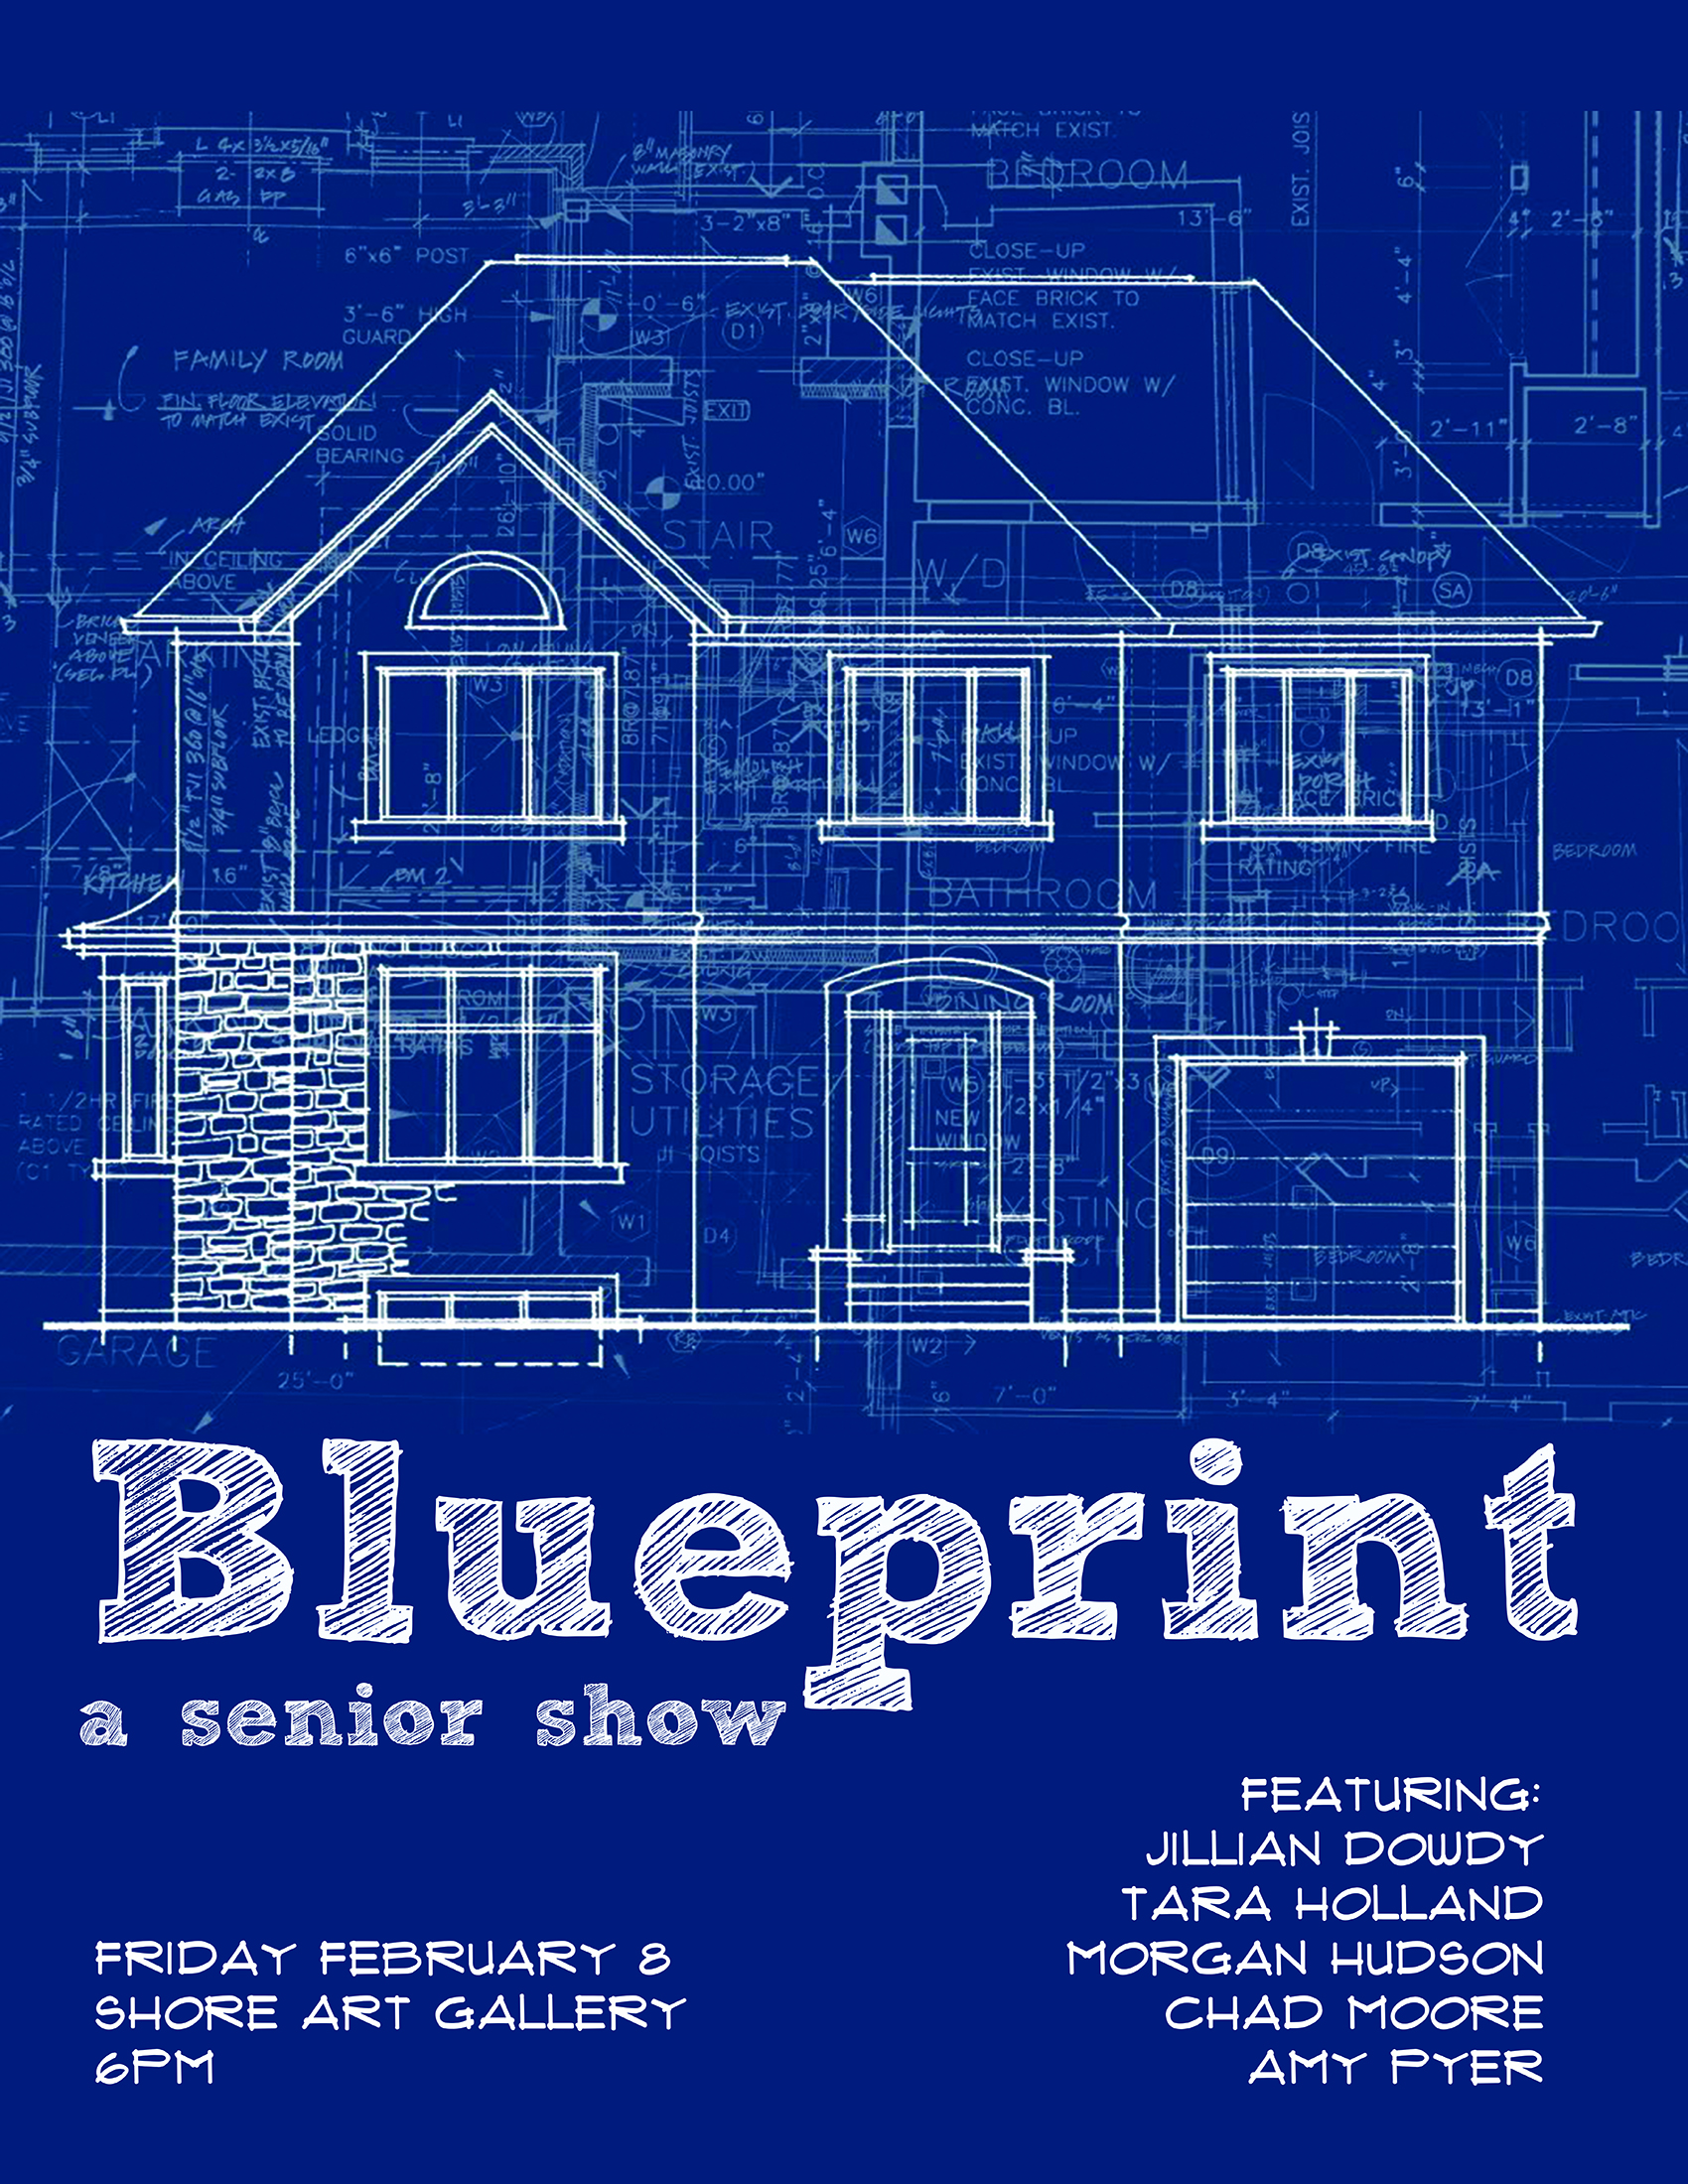 Senior show blueprint art design senior show blueprint malvernweather Gallery